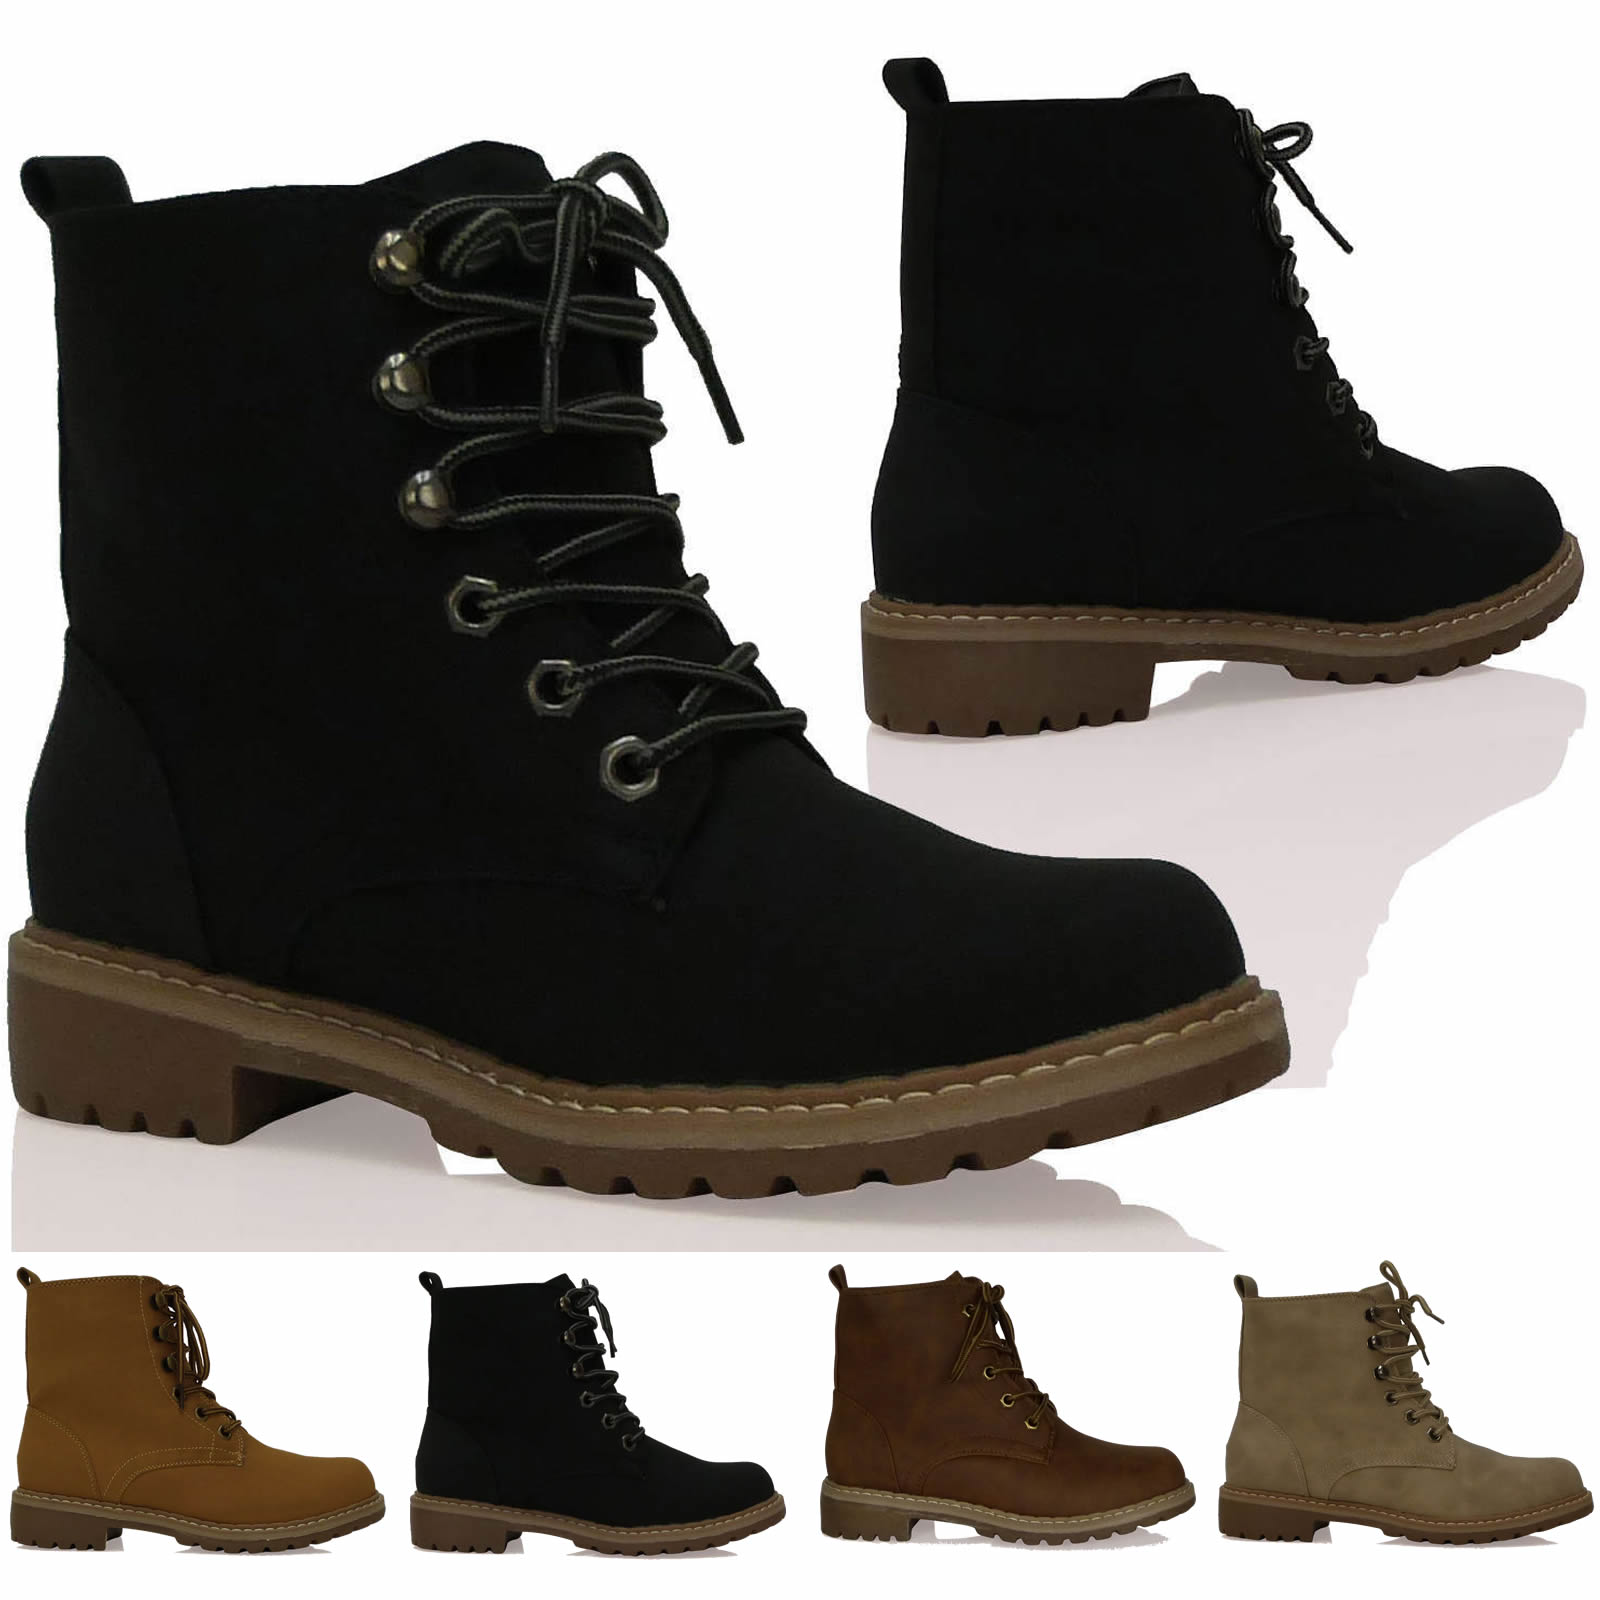 A6B Womens Boots Ladies Ankle Lace Ups Military Army Desert Combat Shoes Size